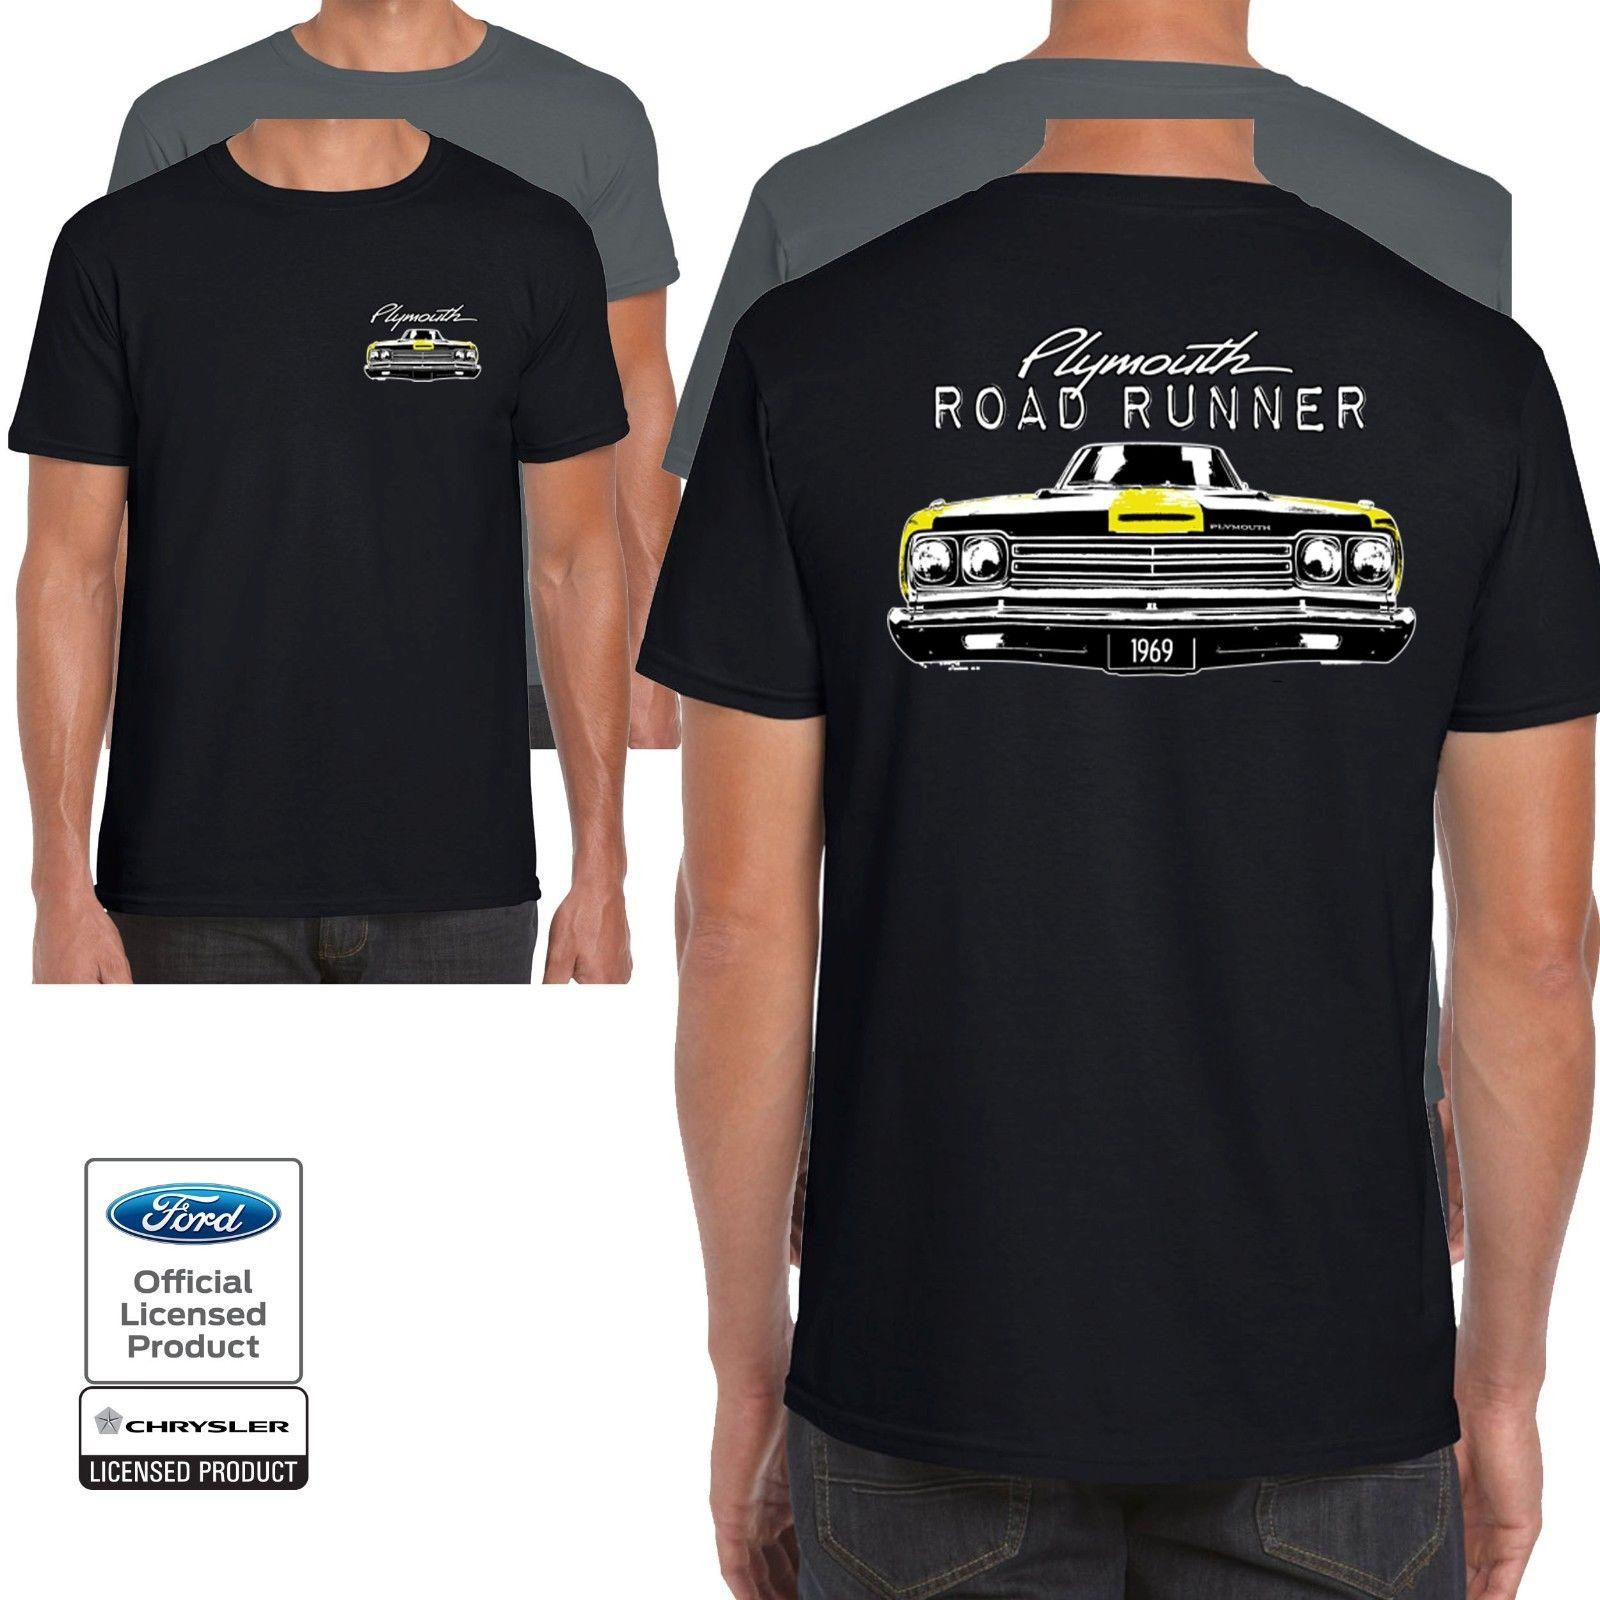 56cb9fbf Plymouth T Shirt American Made RoadRunner Mopar Vintage Classic Muscle  CarFunny Unisex Casual Tshirt Top Shirt Site Printing Of T Shirt From  Tshirtdoctor, ...